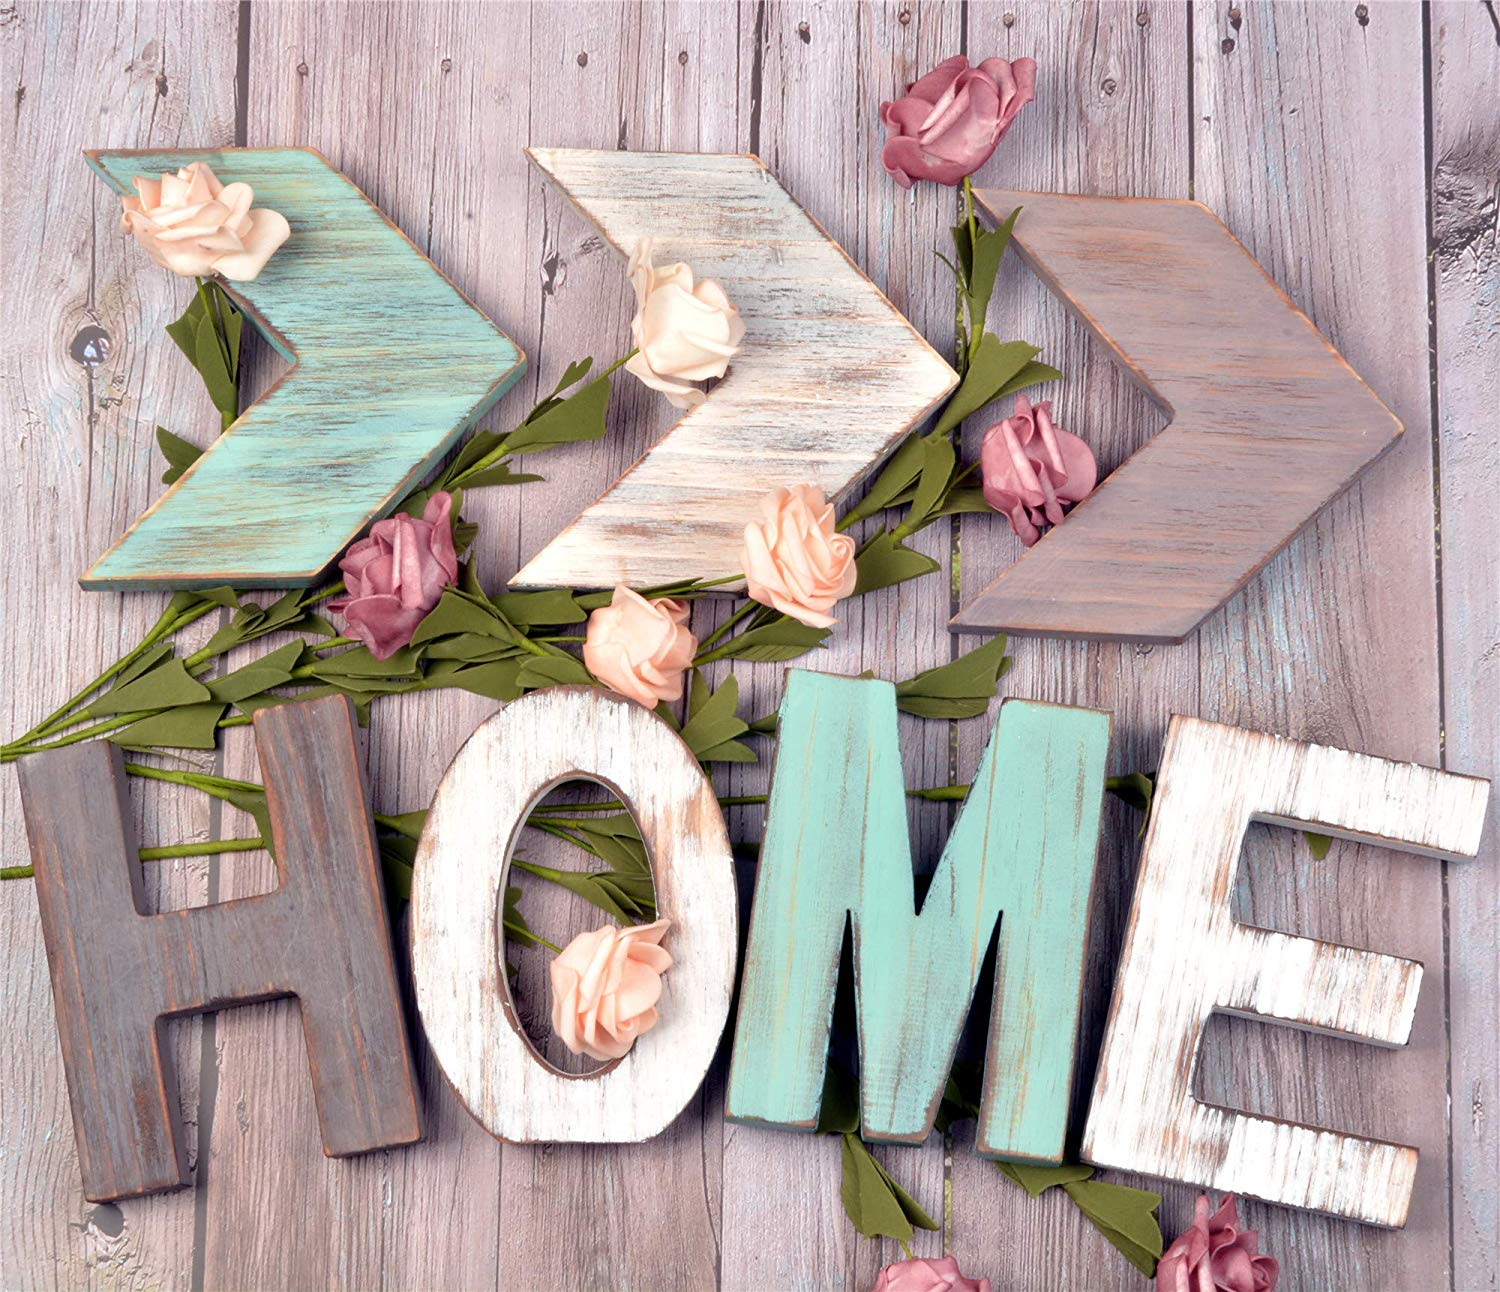 Freestanding Wooden Letters Decorations Home Wall Arts For Home Decor Buy Decorations Home Wall Arts Home Decor Wall Art Painting Custom Sign Product On Alibaba Com